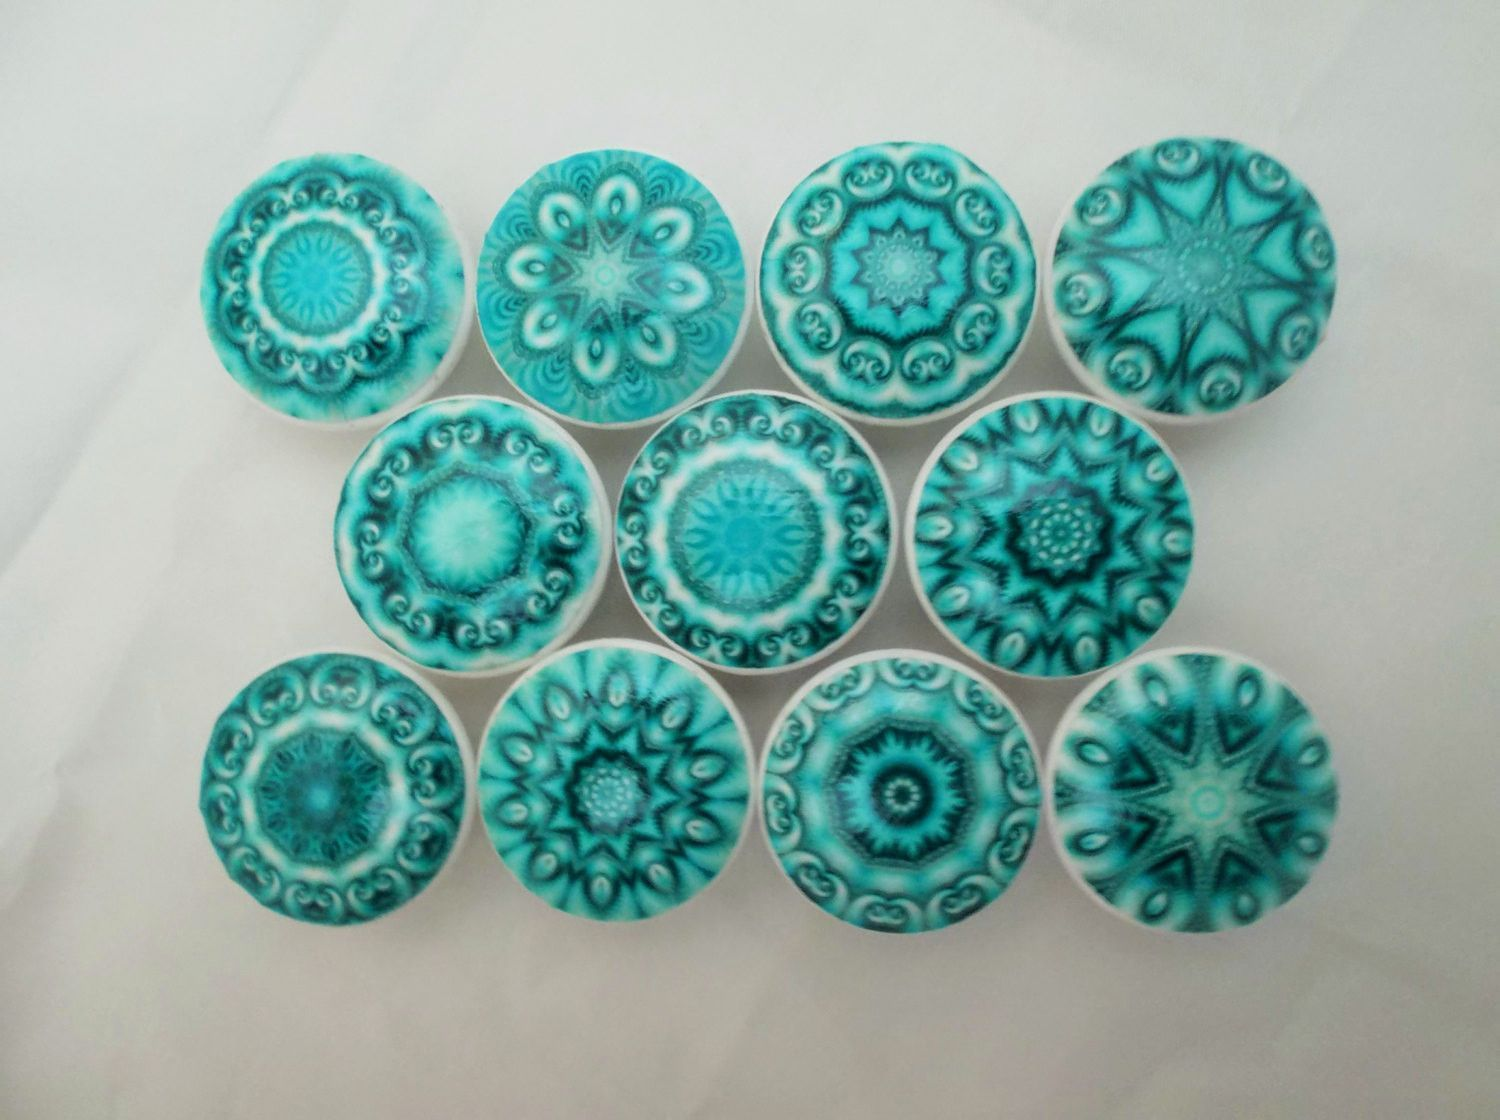 Set of 10 Aqua Blue Mandala Cabinet Knobs | Mandalas Medallions ...